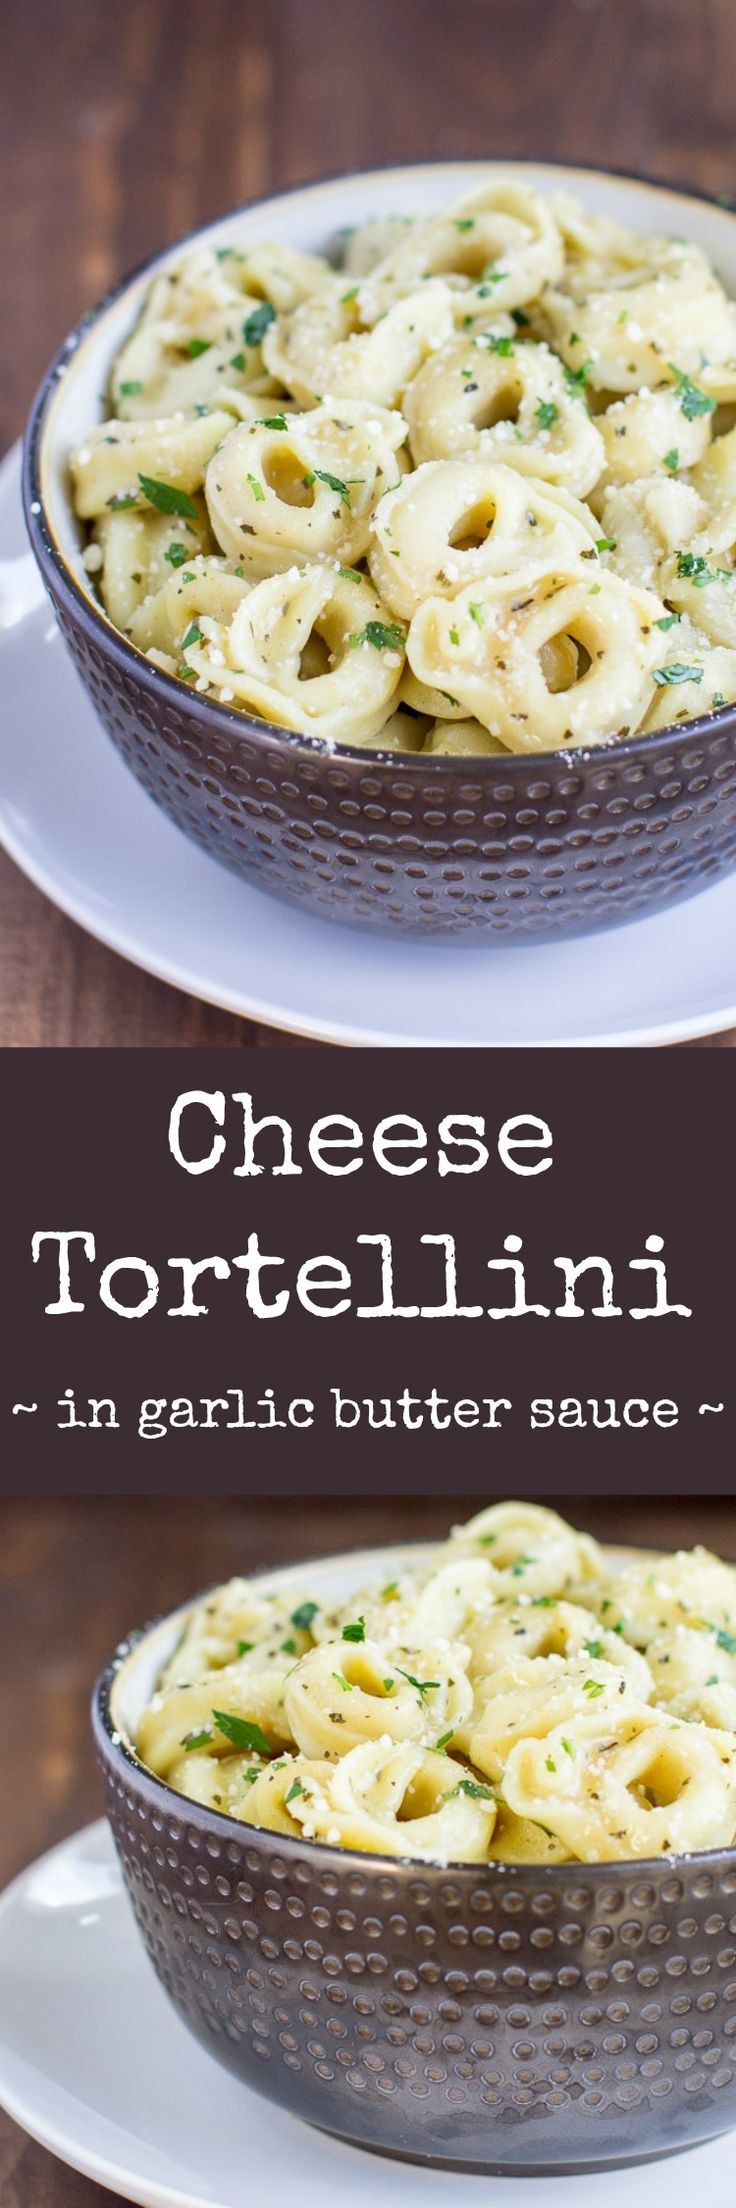 Piping hot Cheese Tortellini served in a delicious garlic butter sauce. It's simple yet special, an easy appetizer or main dish that everyone will love!